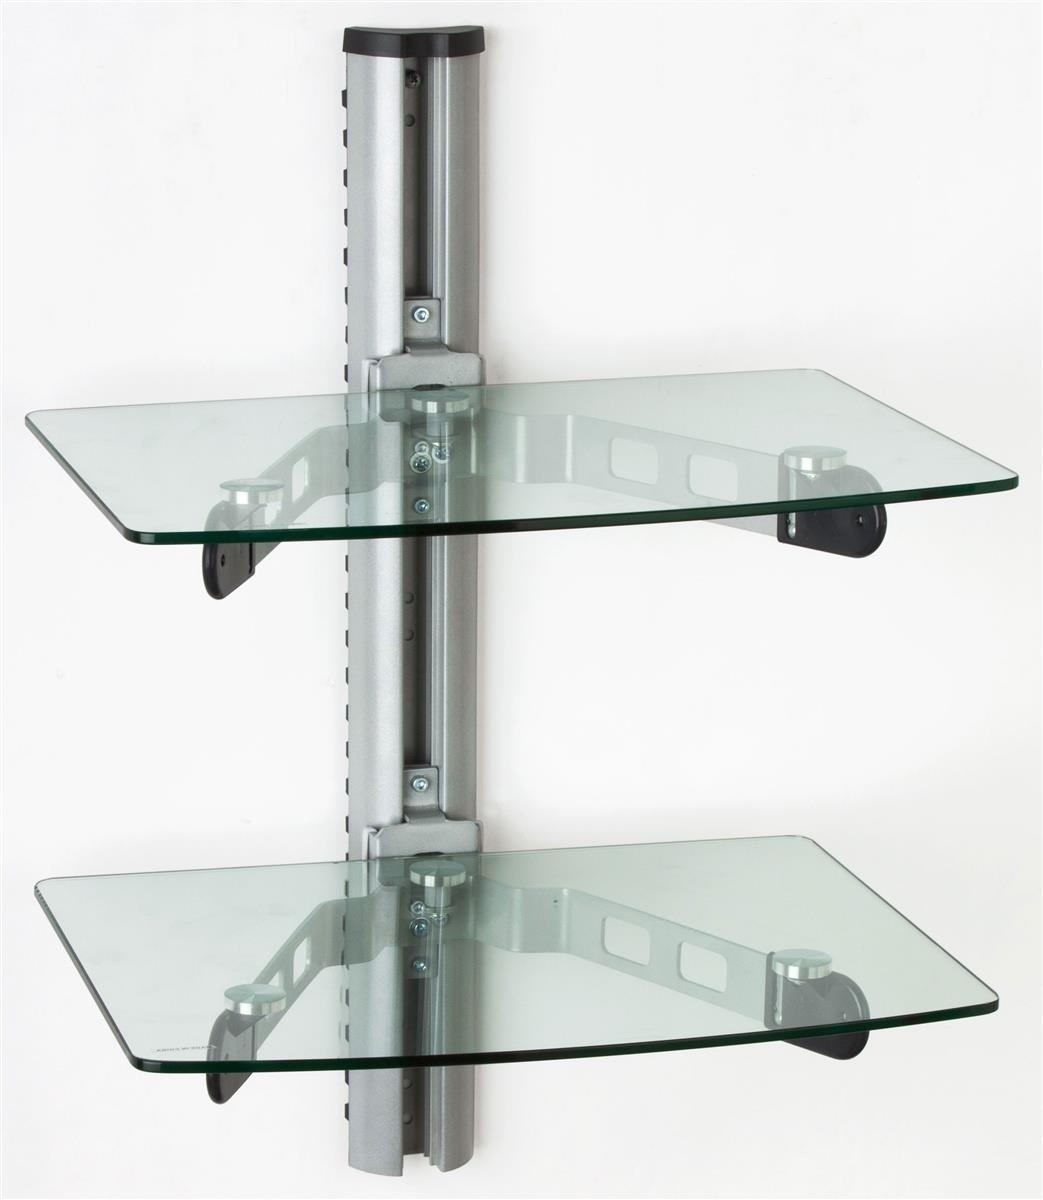 Wall Mounted Glass Shelves Av Component Stand For Black Glass Shelves Wall Mounted (View 10 of 15)